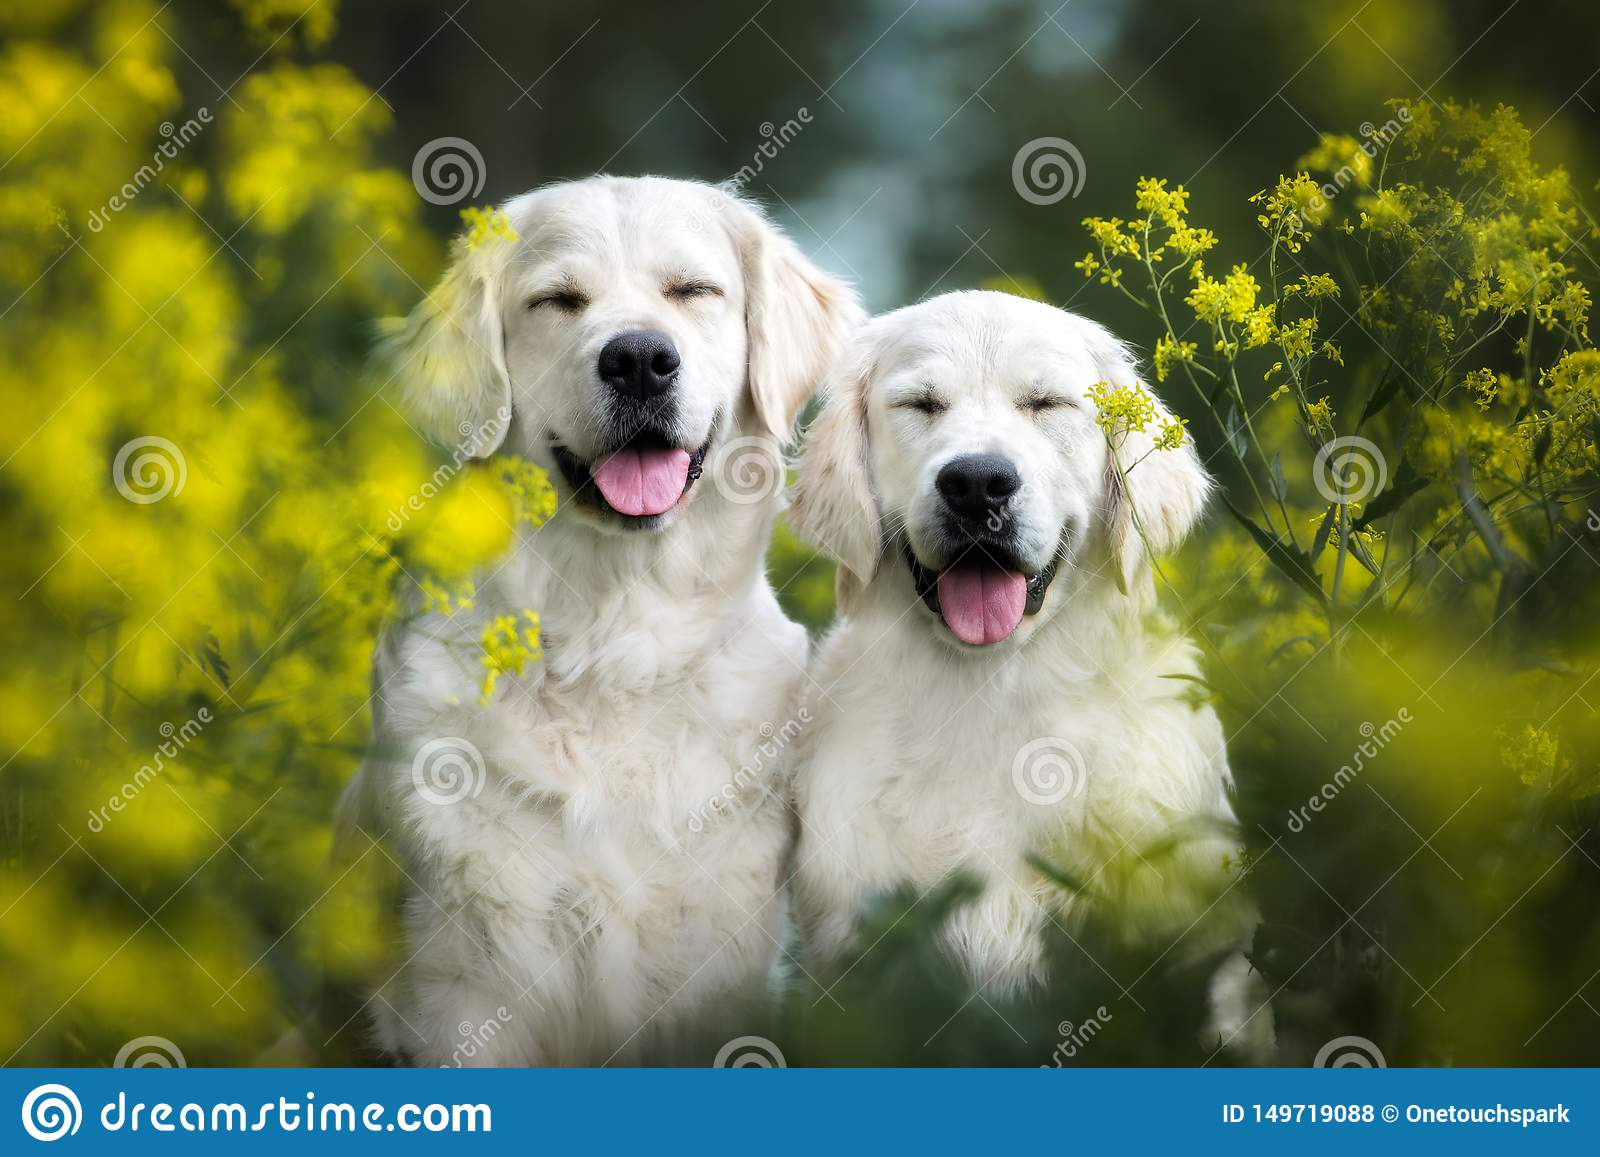 Two happy smiling dogs posing outdoors in summer